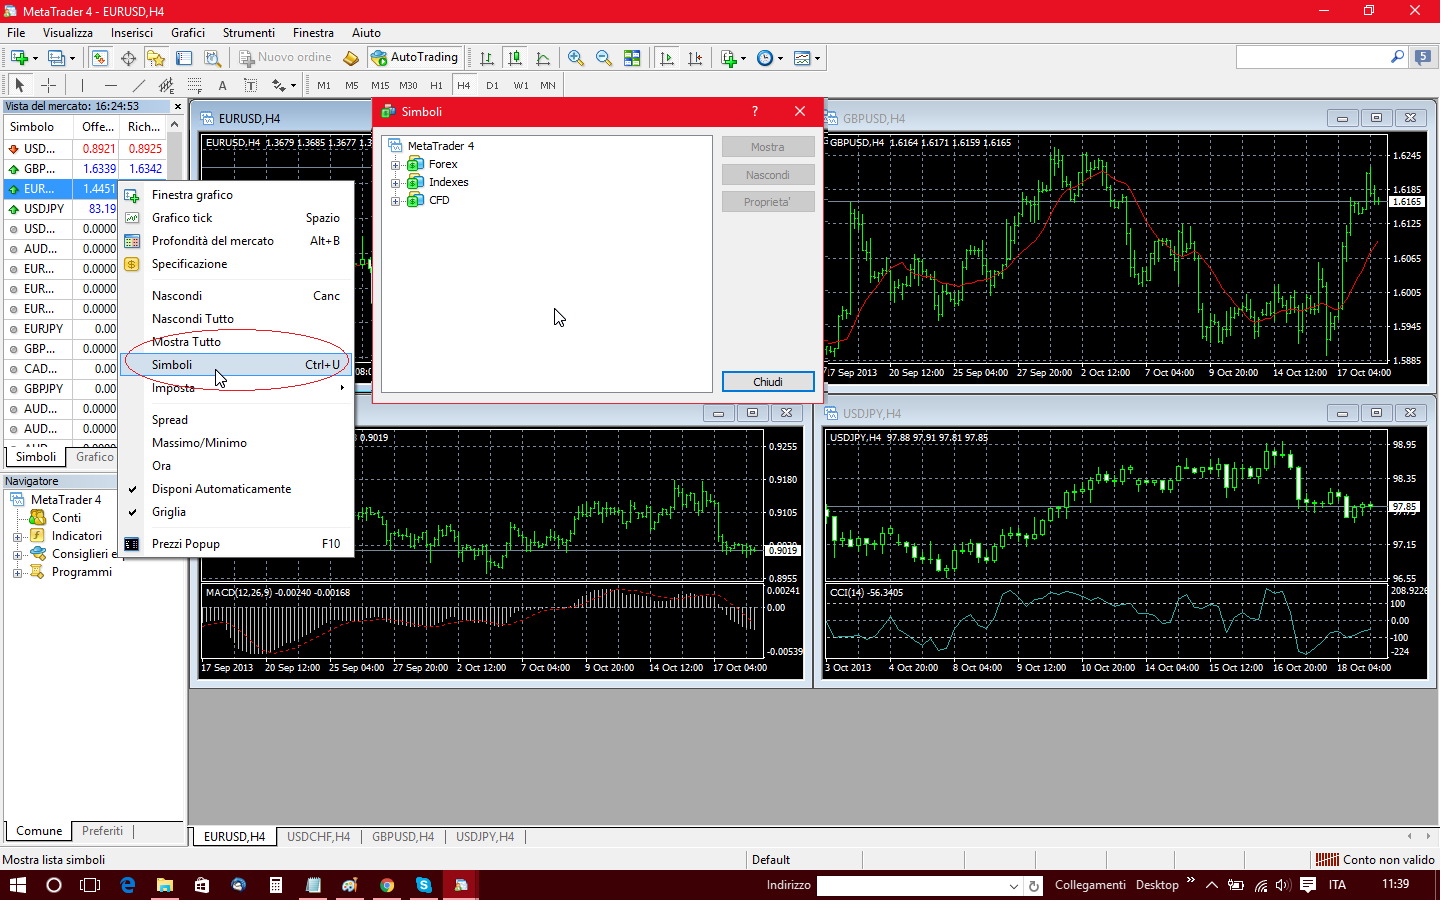 Metatrader 4 manuale italiano